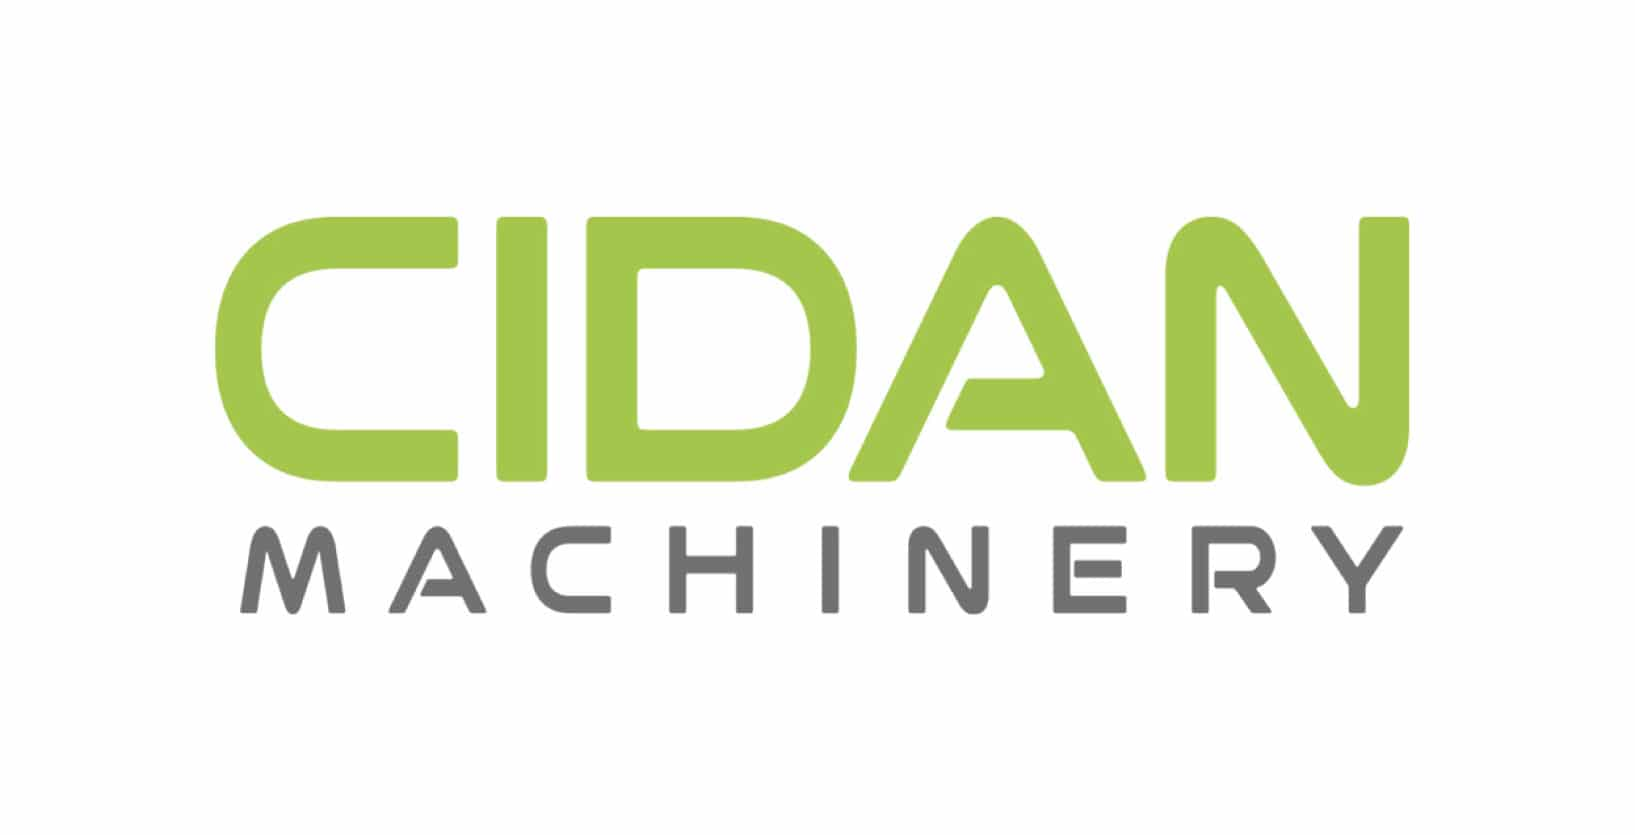 CIDAN Machinery